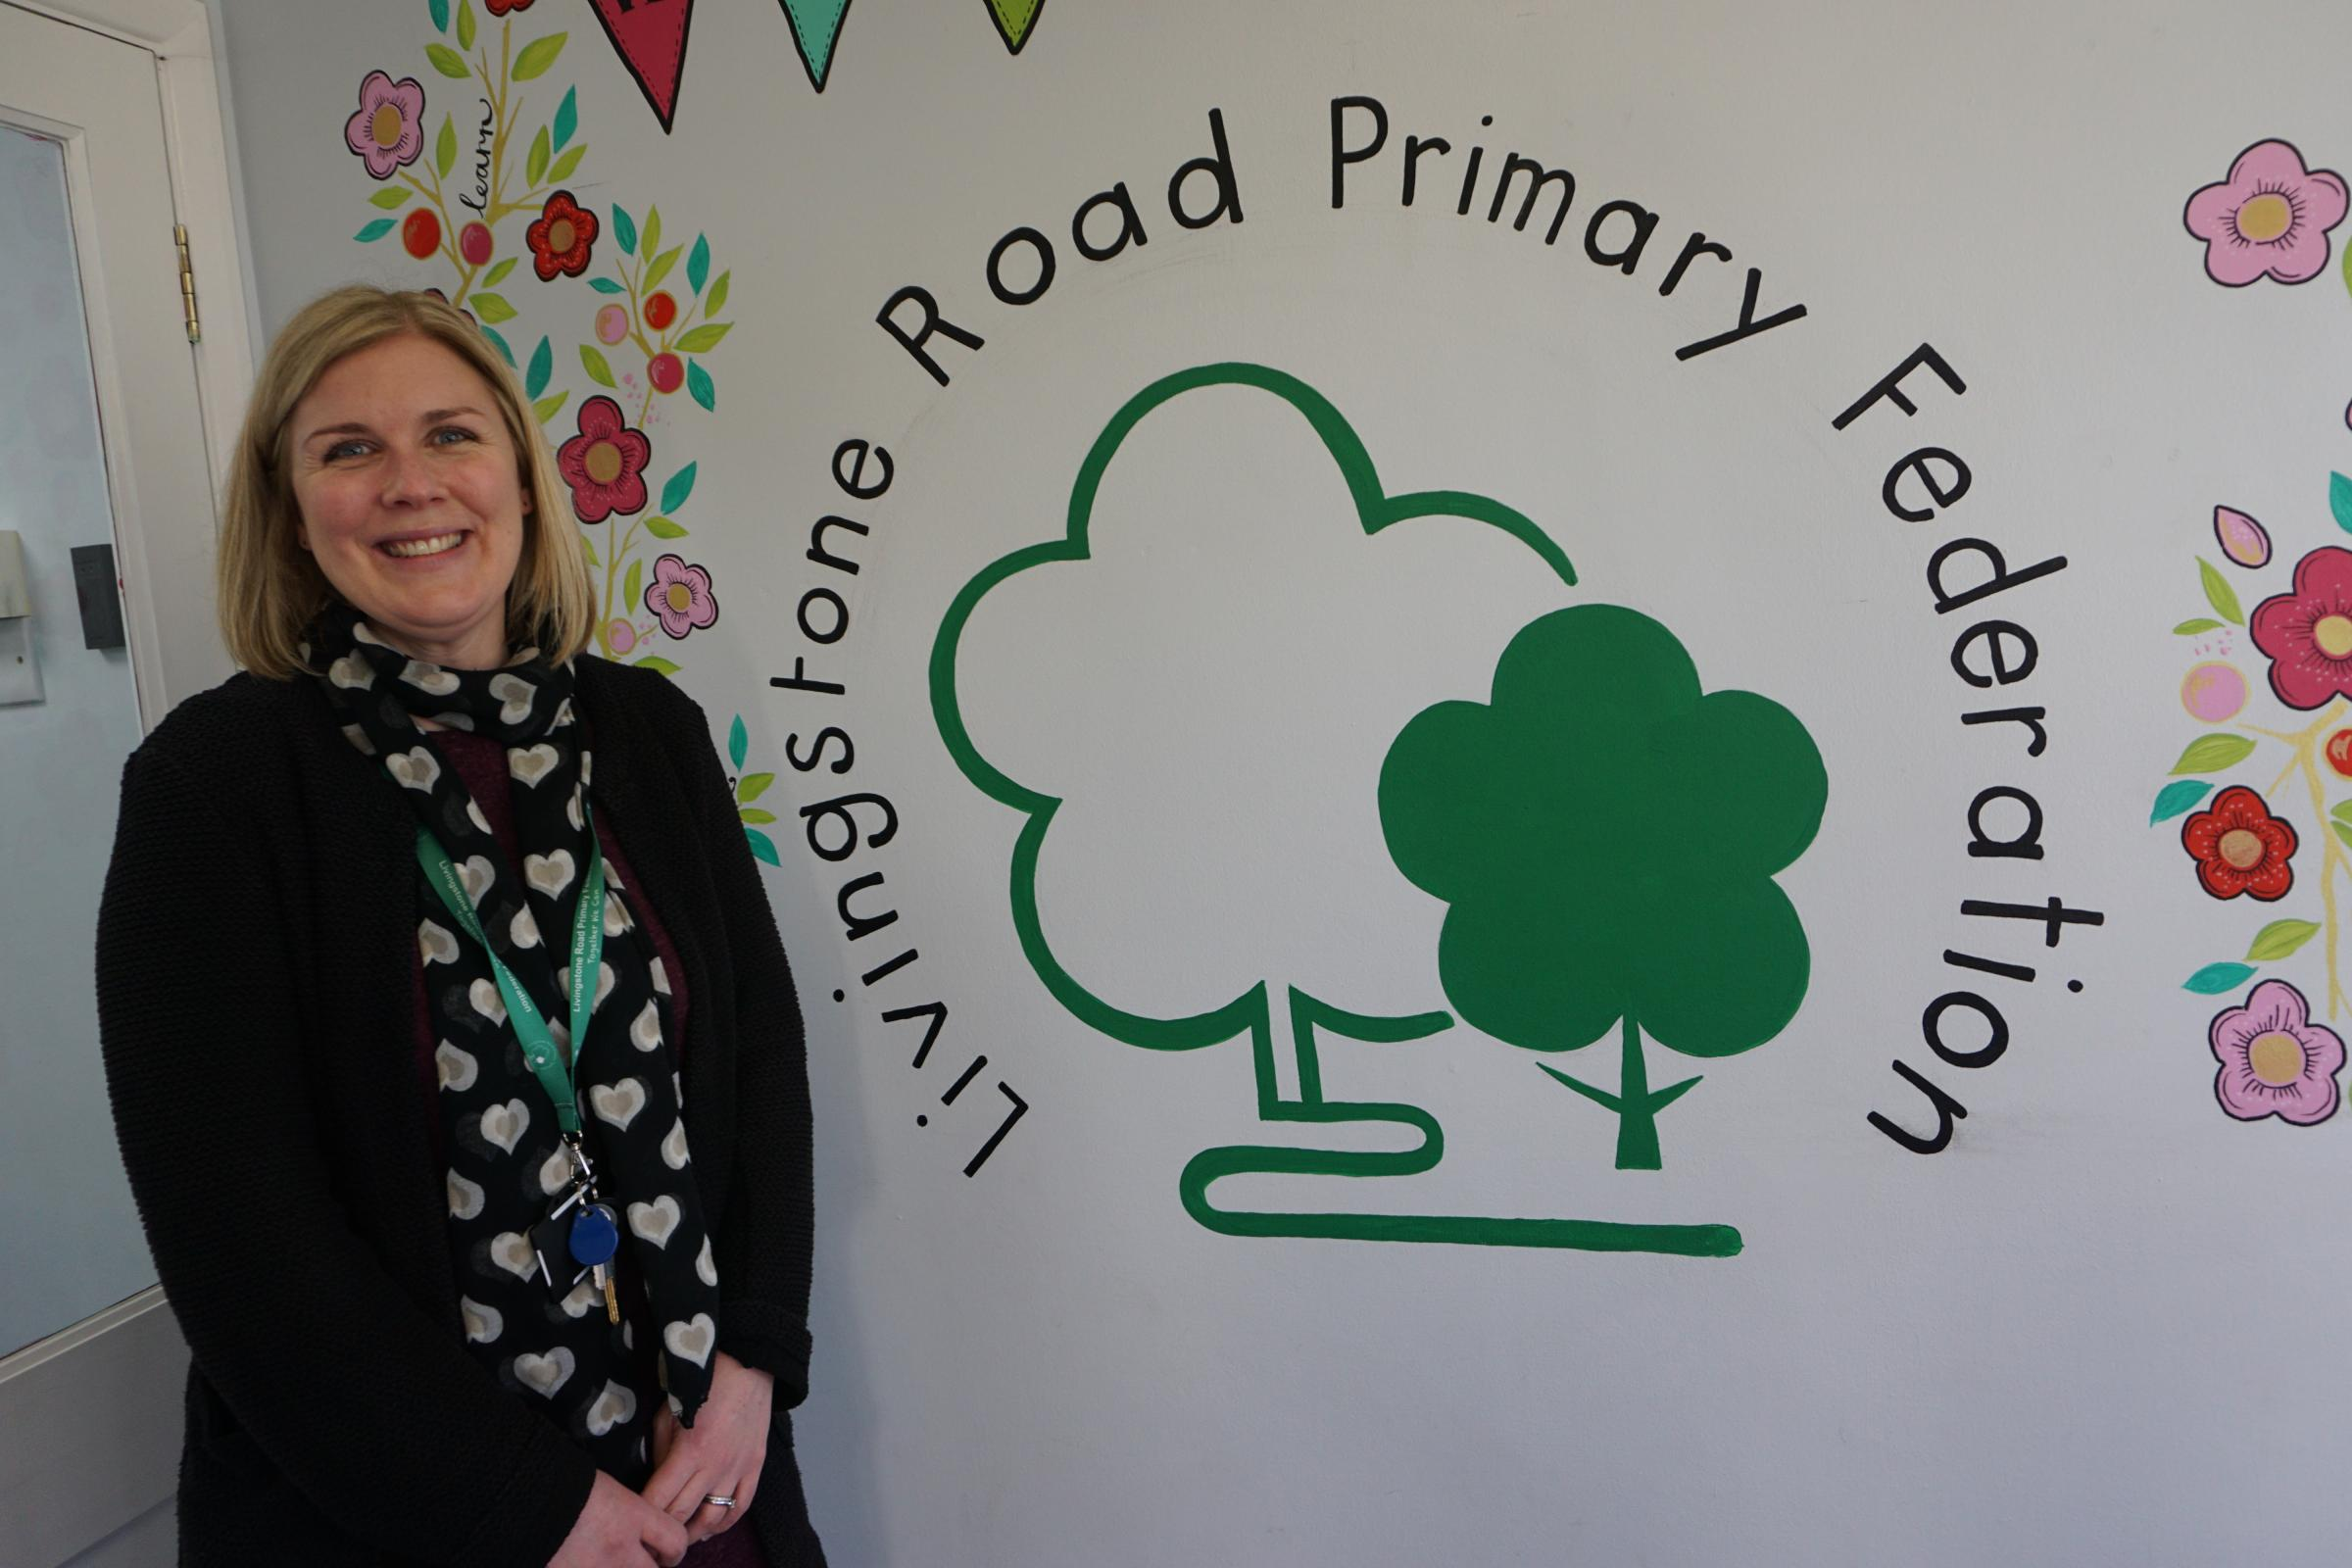 Suzy Hayward, executive head teacher of Sylvan Infant School and Branksome Heath Junior